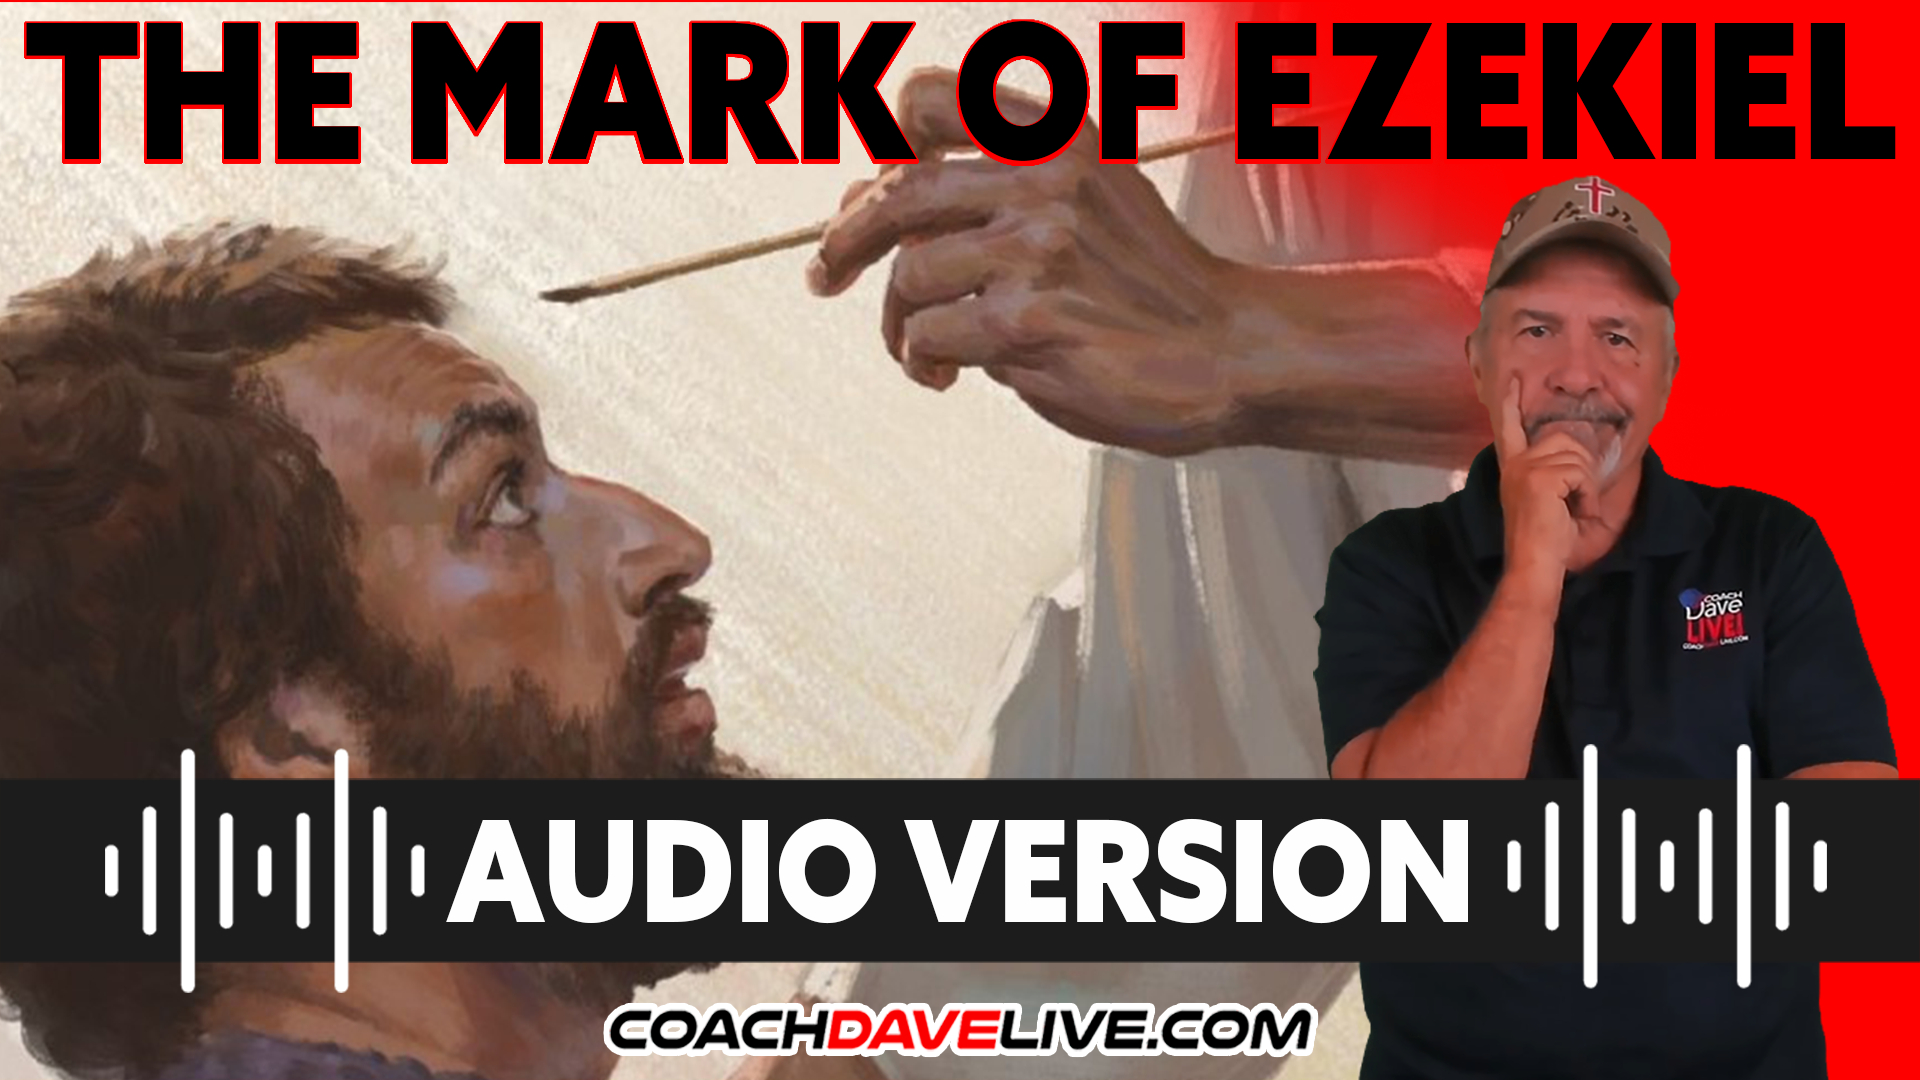 Coach Dave LIVE   10-7-2021   THE MARK OF EZEKIEL - AUDIO ONLY